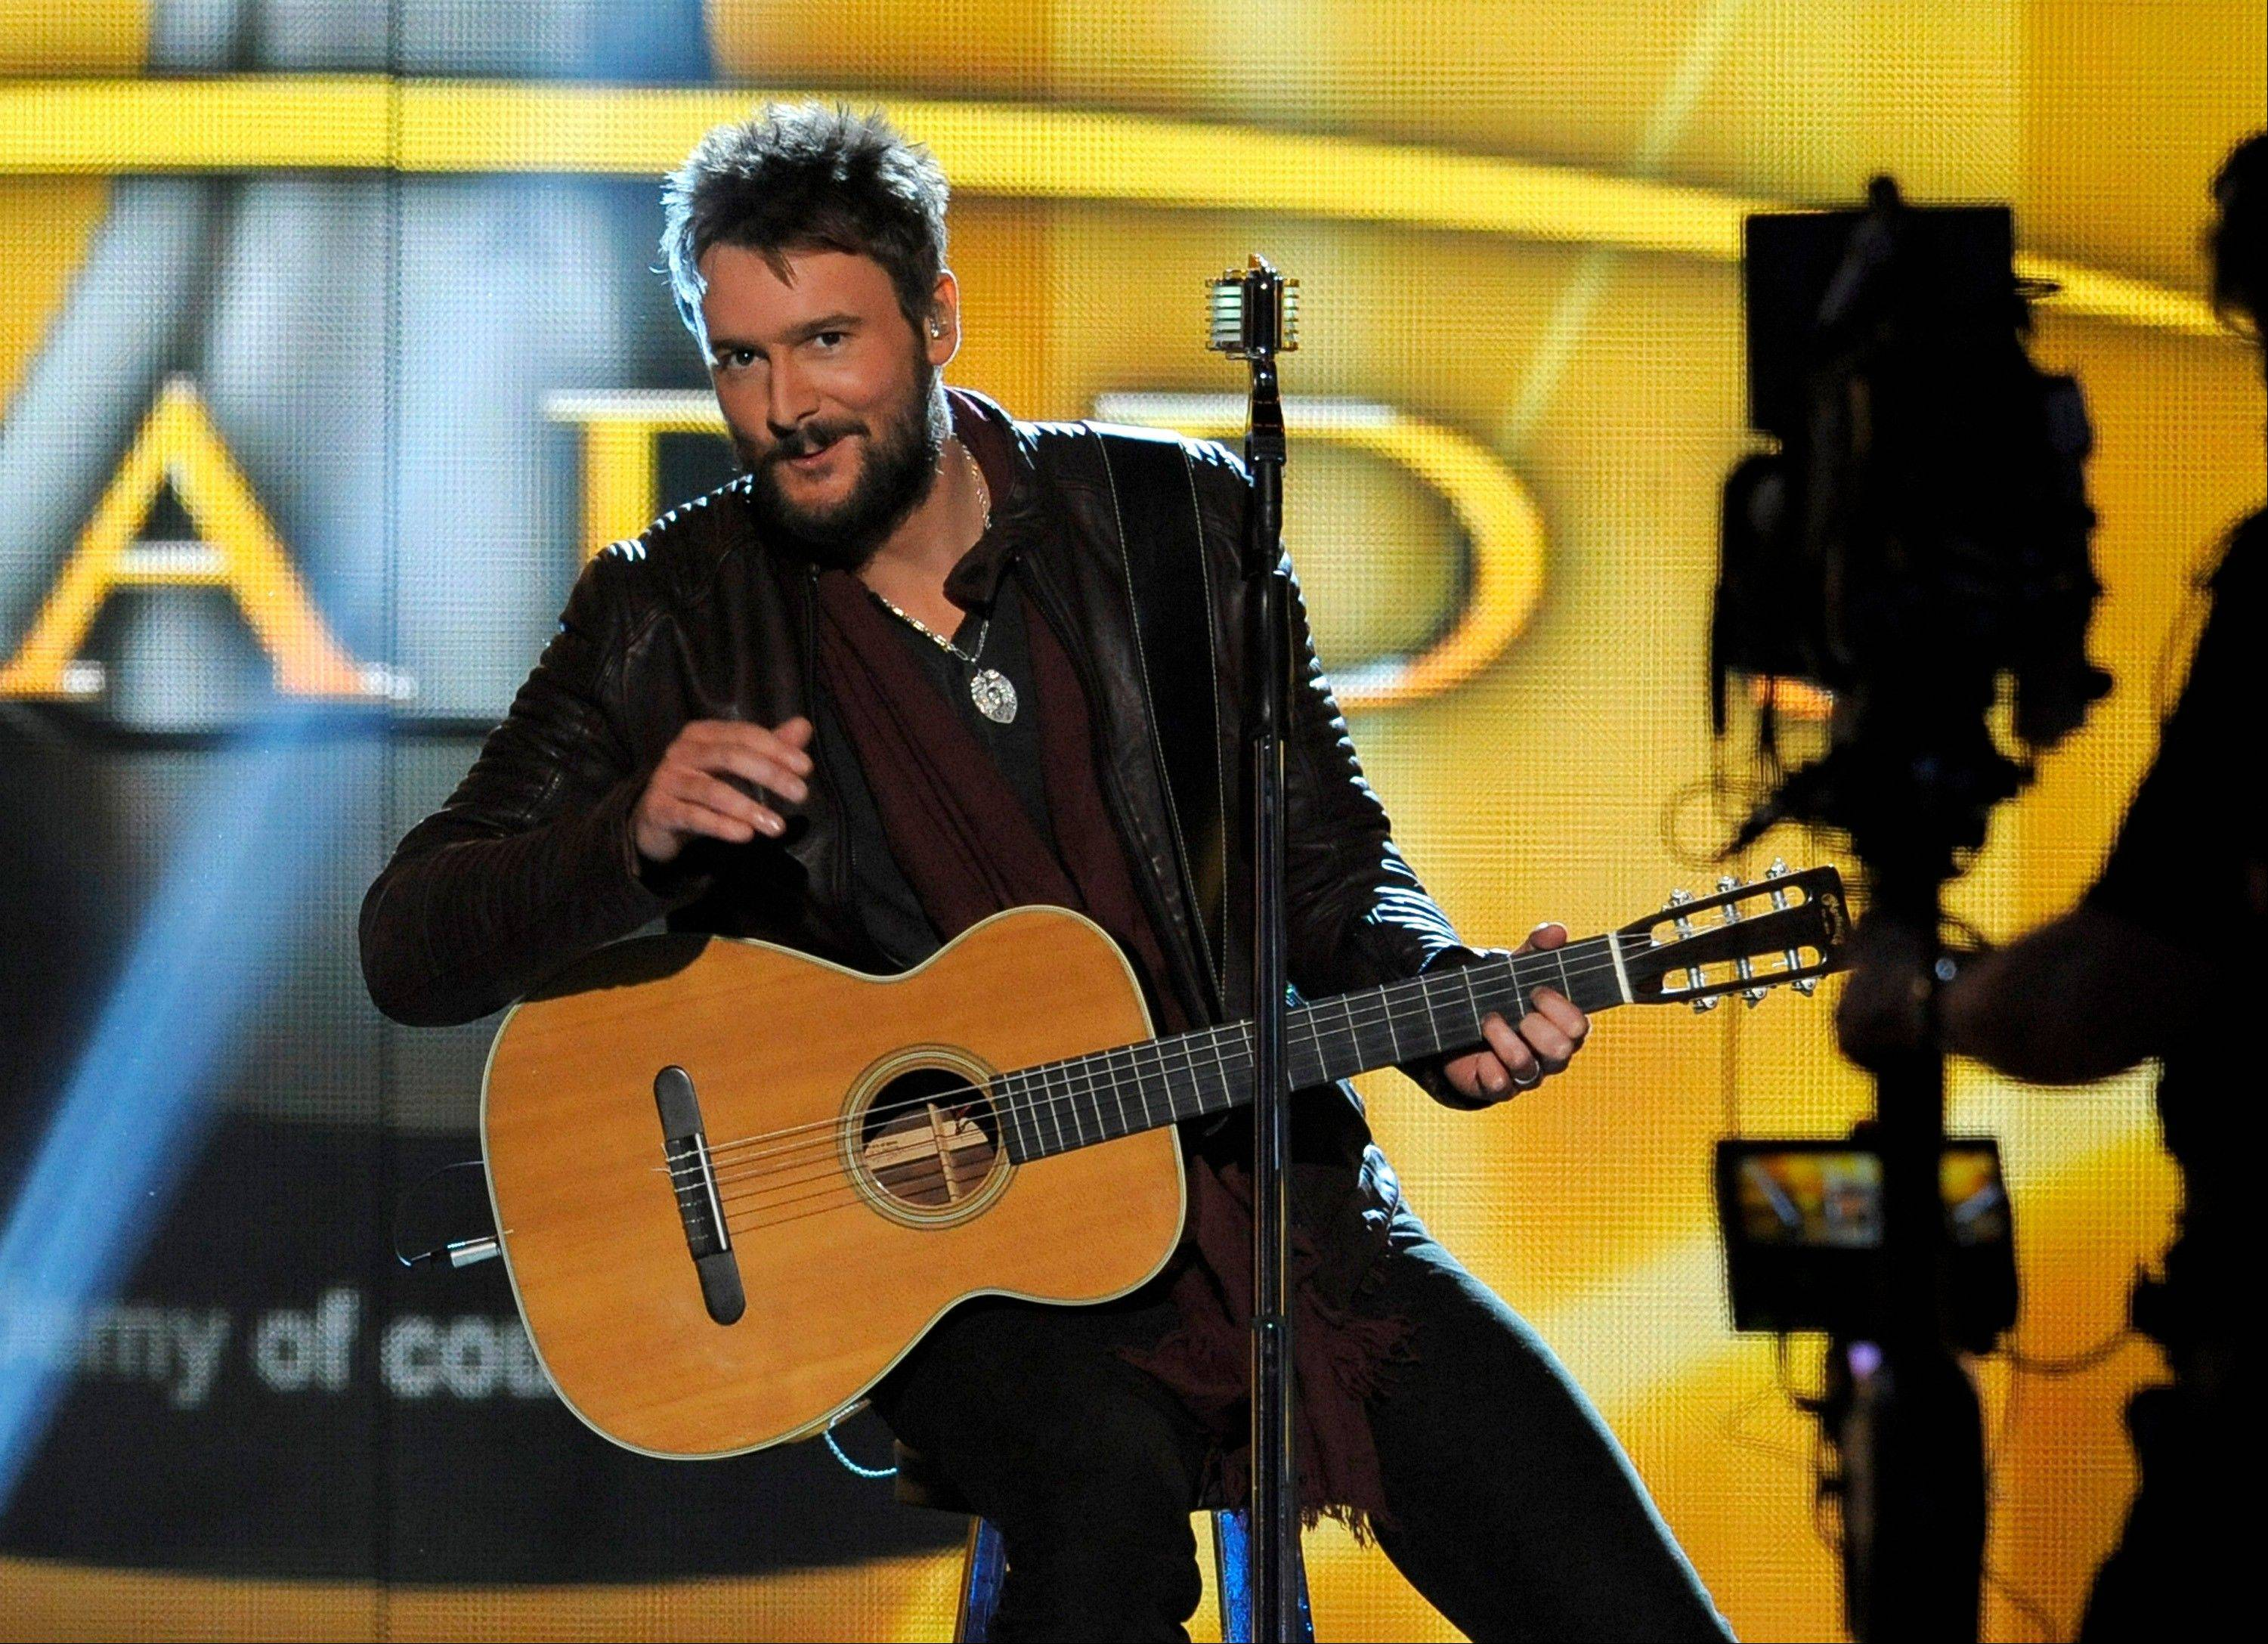 Singer Eric Church performs at the 48th Annual Academy of Country Music Awards at the MGM Grand Garden Arena in Las Vegas on Sunday, April 7, 2013.